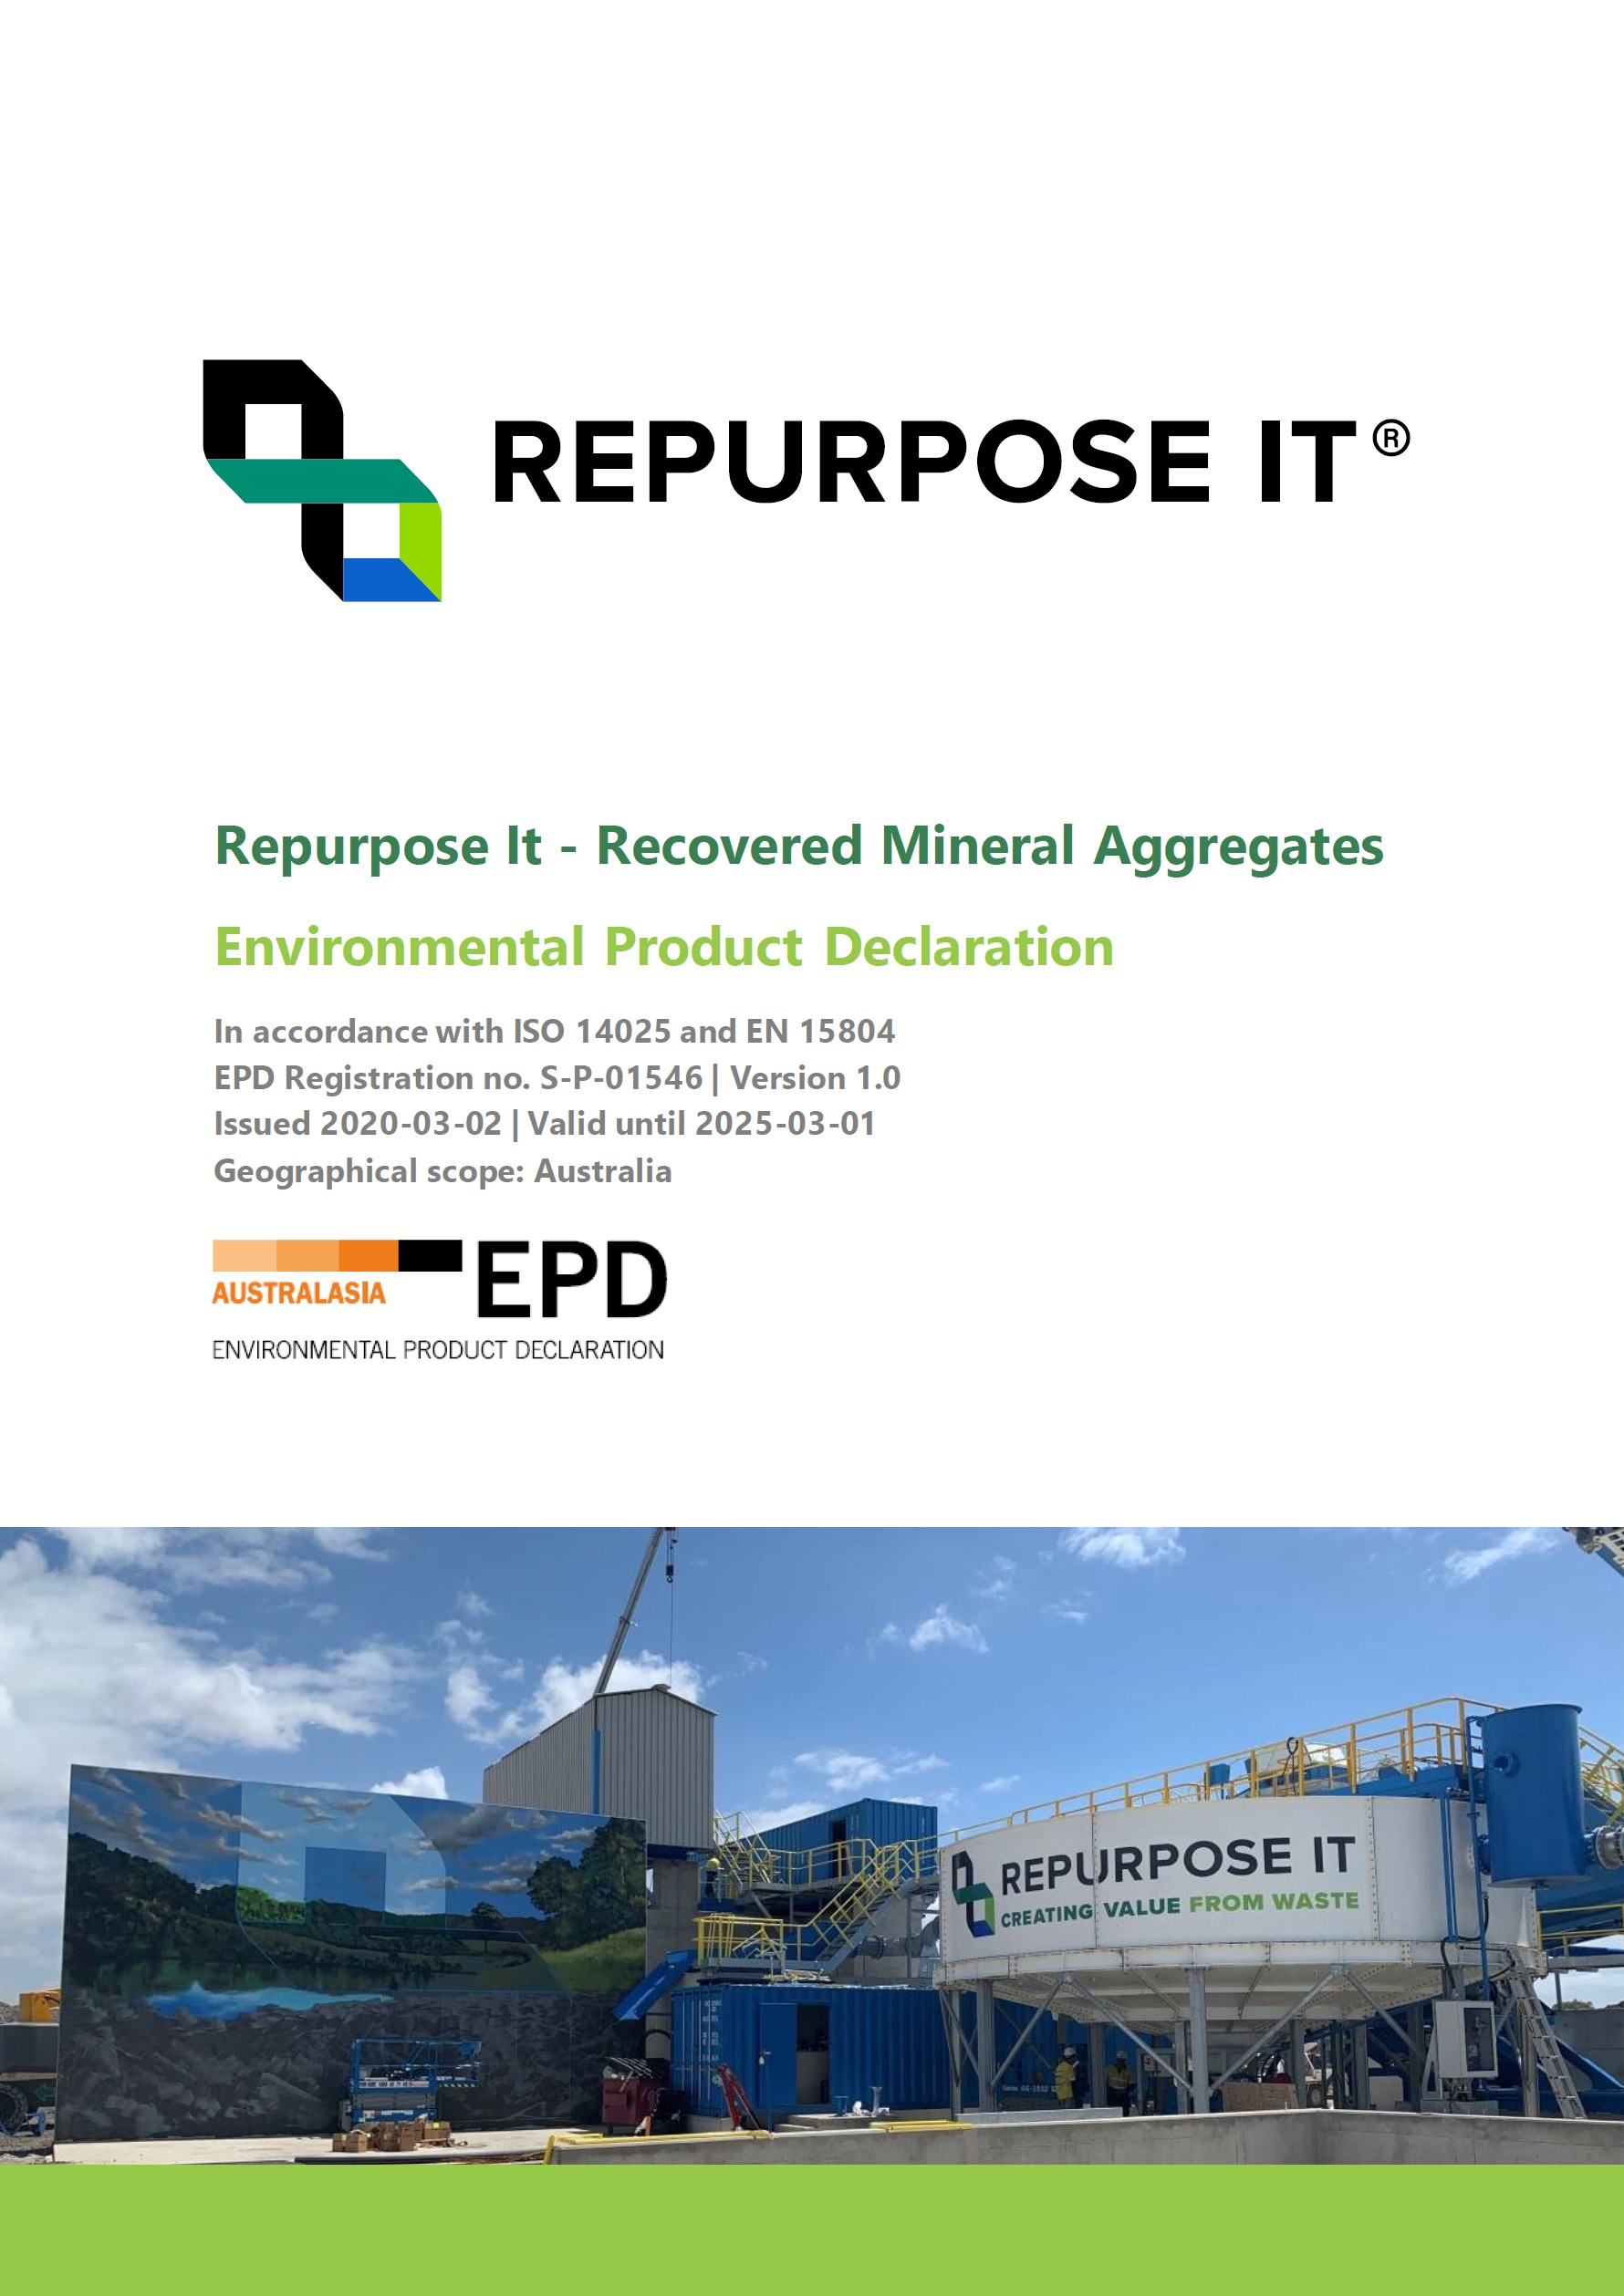 Repurpose It - Recovered Mineral Aggregates